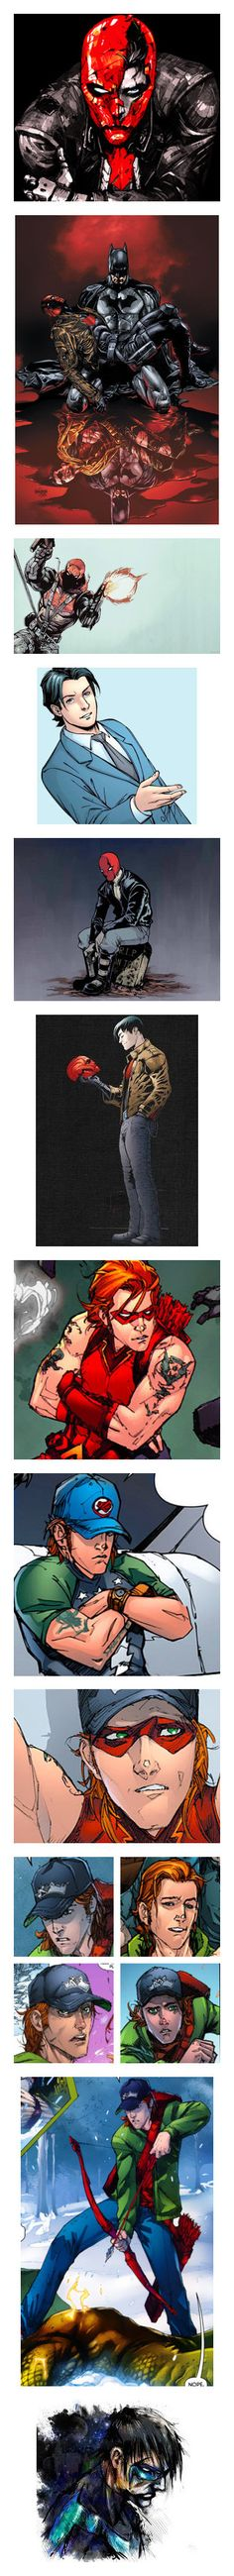 """""""Heroes & Villains 19"""" by xx-black-blade-xx ❤ liked on Polyvore featuring deadpool, marvel, comics, pictures, disney, brave, merida, backgrounds, kida and atlantis"""